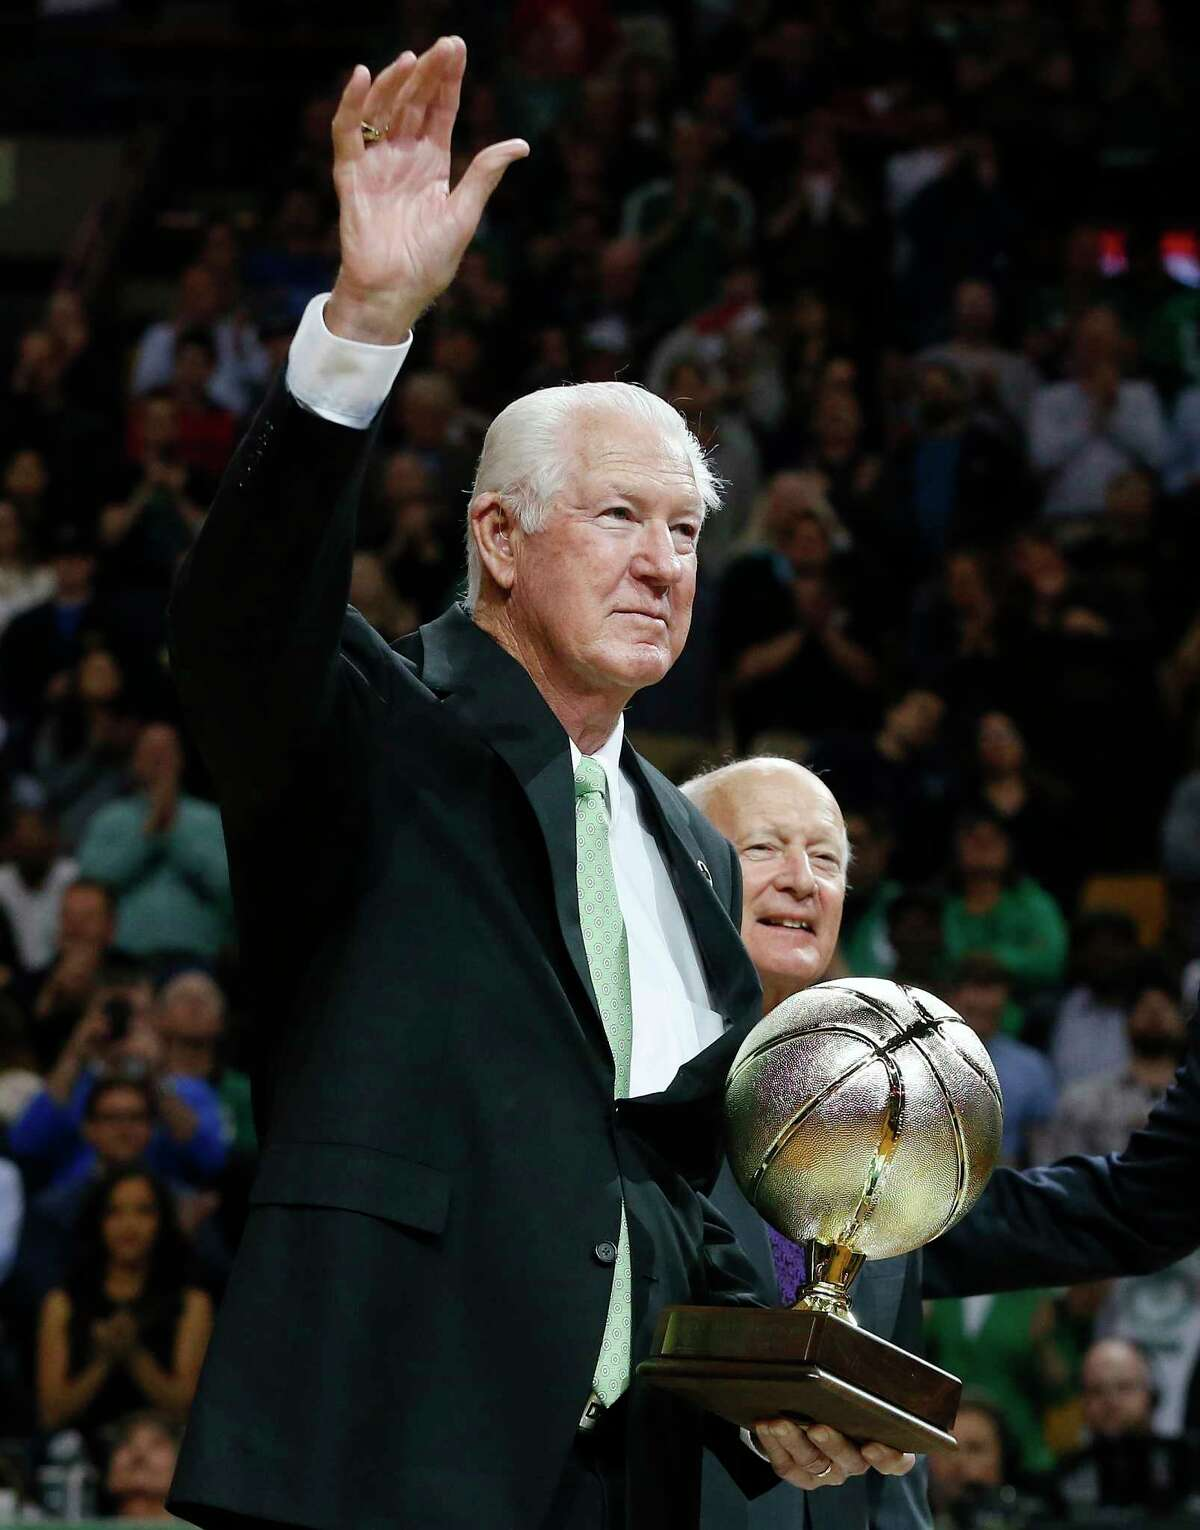 FILE - In this Tuesday, April 14, 2015 file photo, former Boston Celtics great John Havlicek waves while being honored on the court after the first quarter of an NBA basketball game against the Toronto Raptors in Boston. The Boston Celtics say Hall of Famer John Havlicek, whose steal of Hal Green?s inbounds pass in the final seconds of the 1965 Eastern Conference finals against the Philadelphia 76ers remains one of the most famous plays in NBA history, has died. The team says Havlicek died Thursday, April 25, 2019 at age 79. (AP Photo/Michael Dwyer, File)